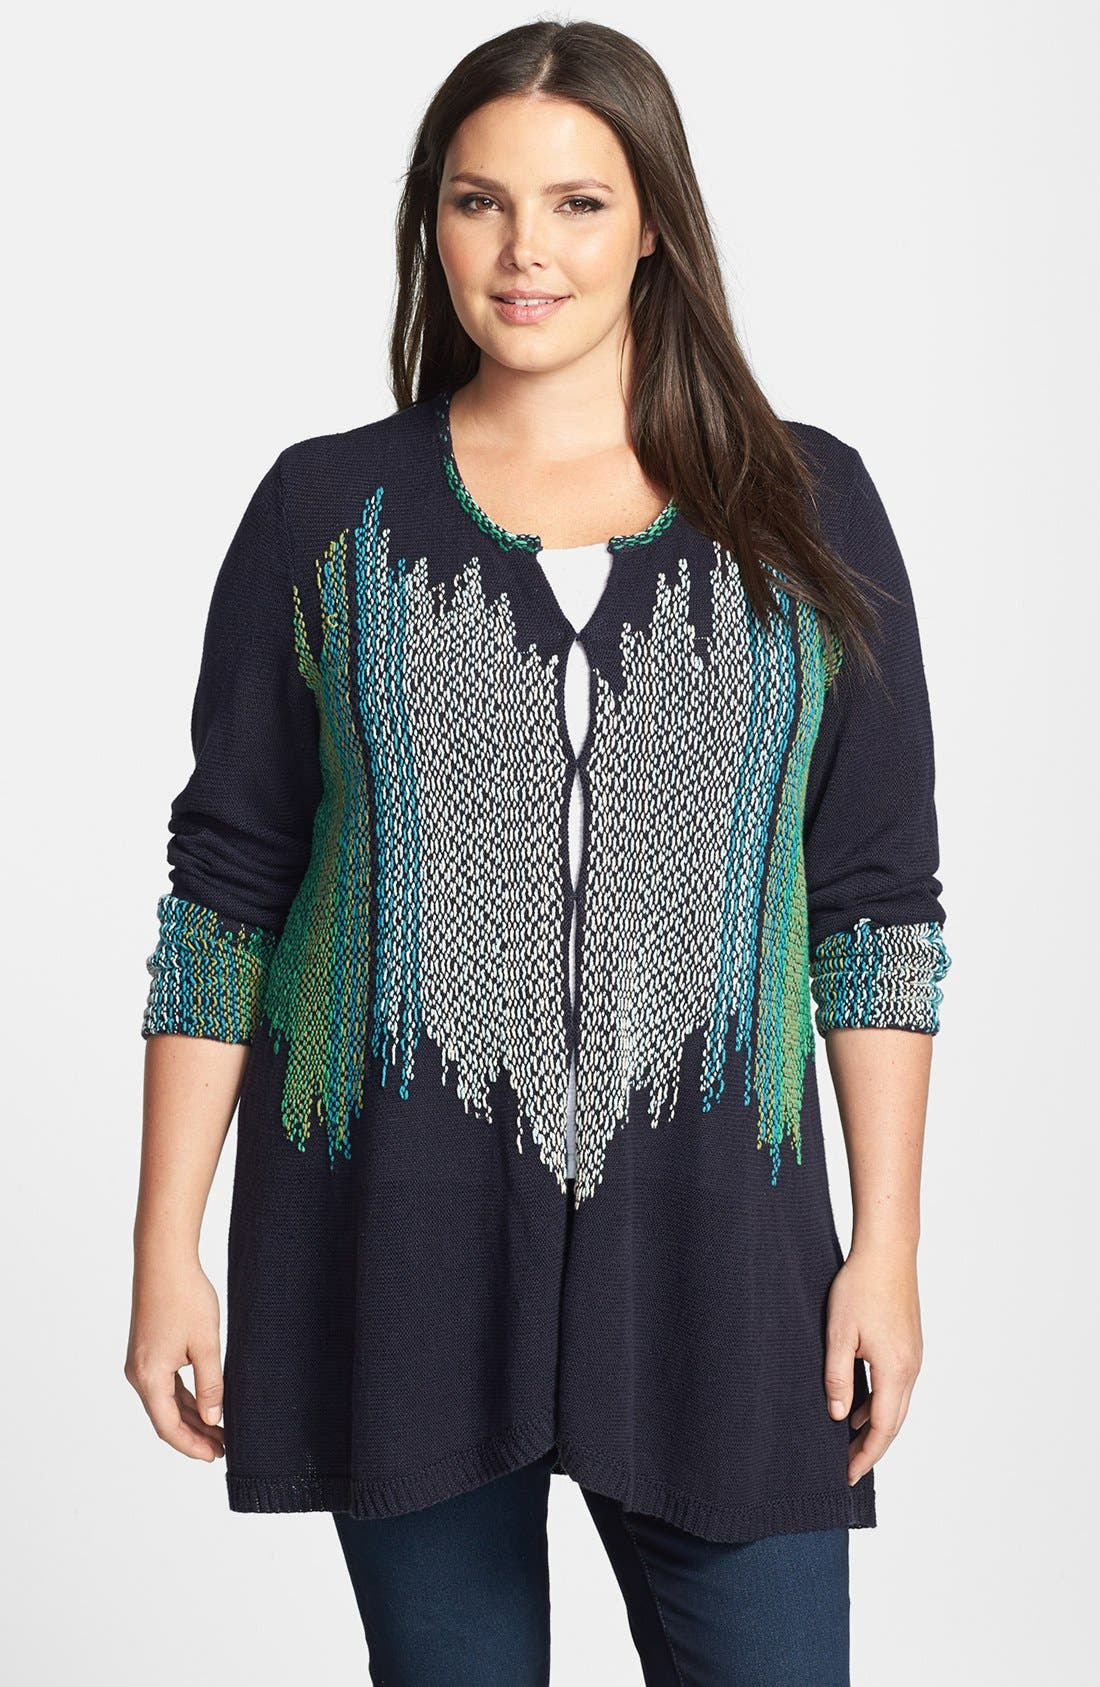 Alternate Image 1 Selected - NIC+ZOE 'Color Weave' Cardigan (Plus Size)